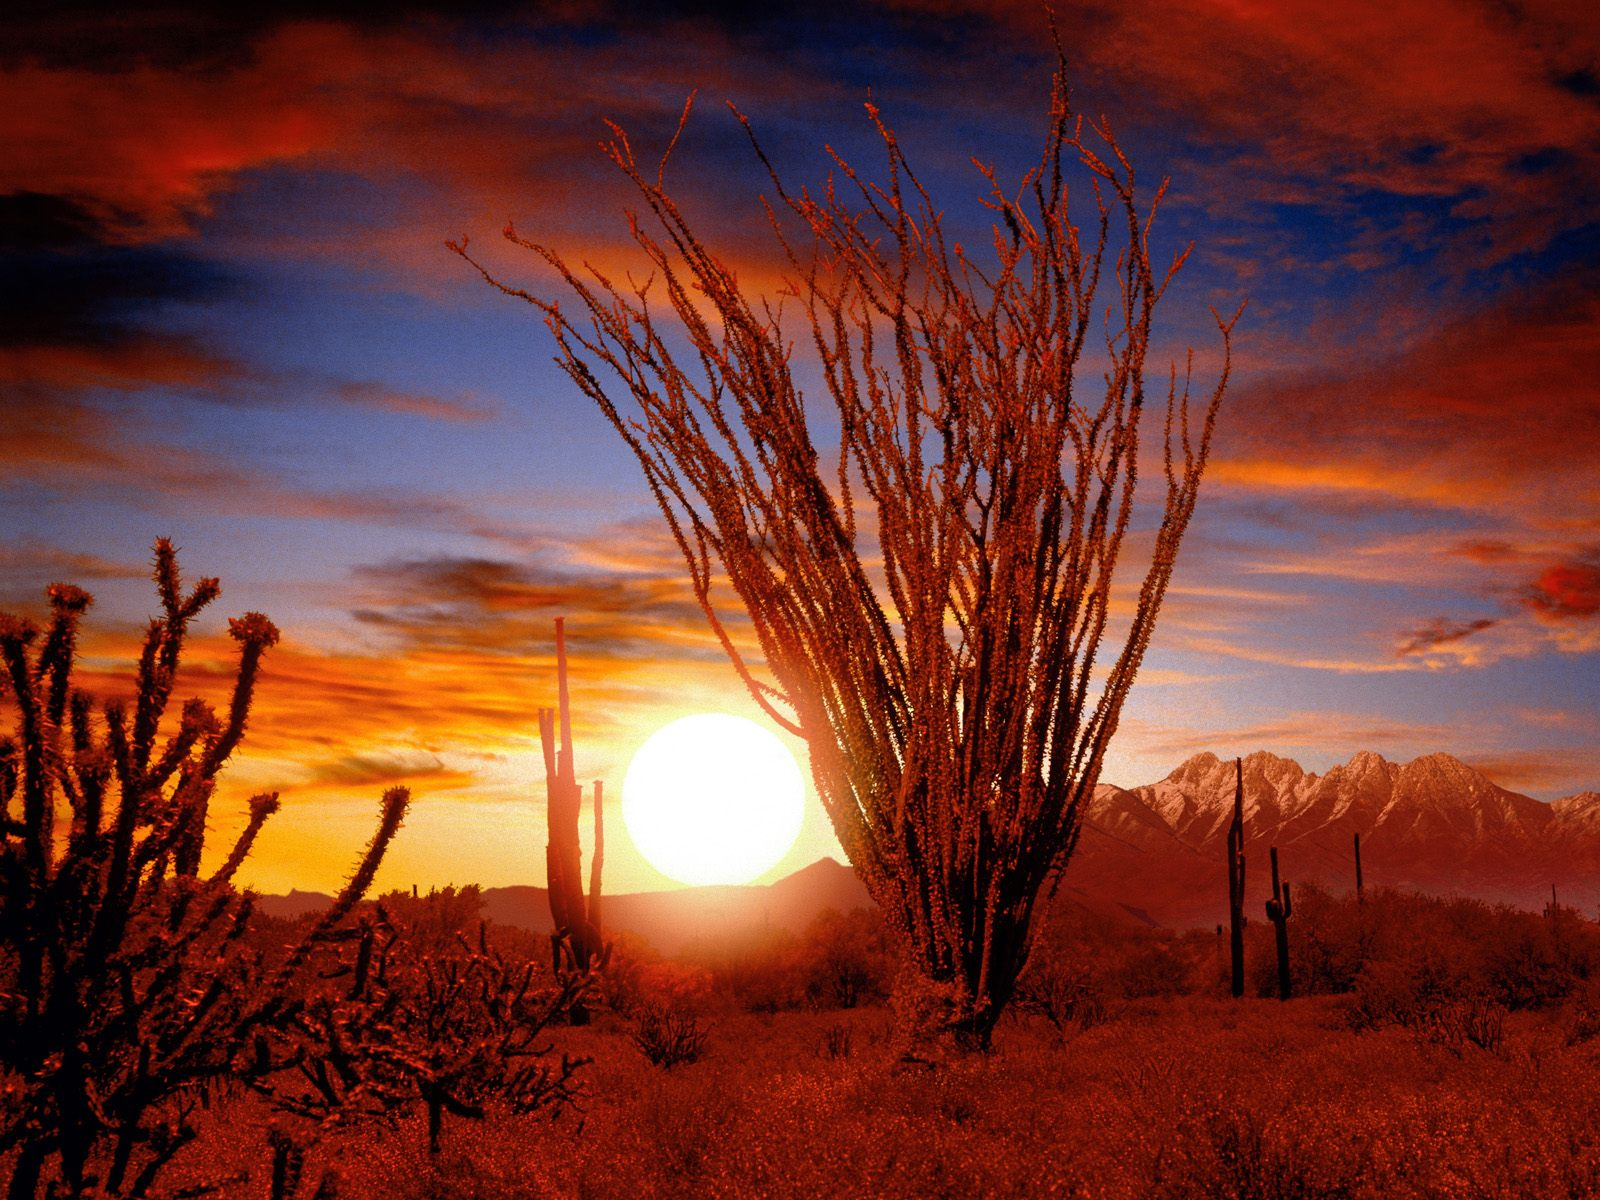 Sonora Desert Arizona Wallpapers Pictures Photos and Backgrounds 1600x1200